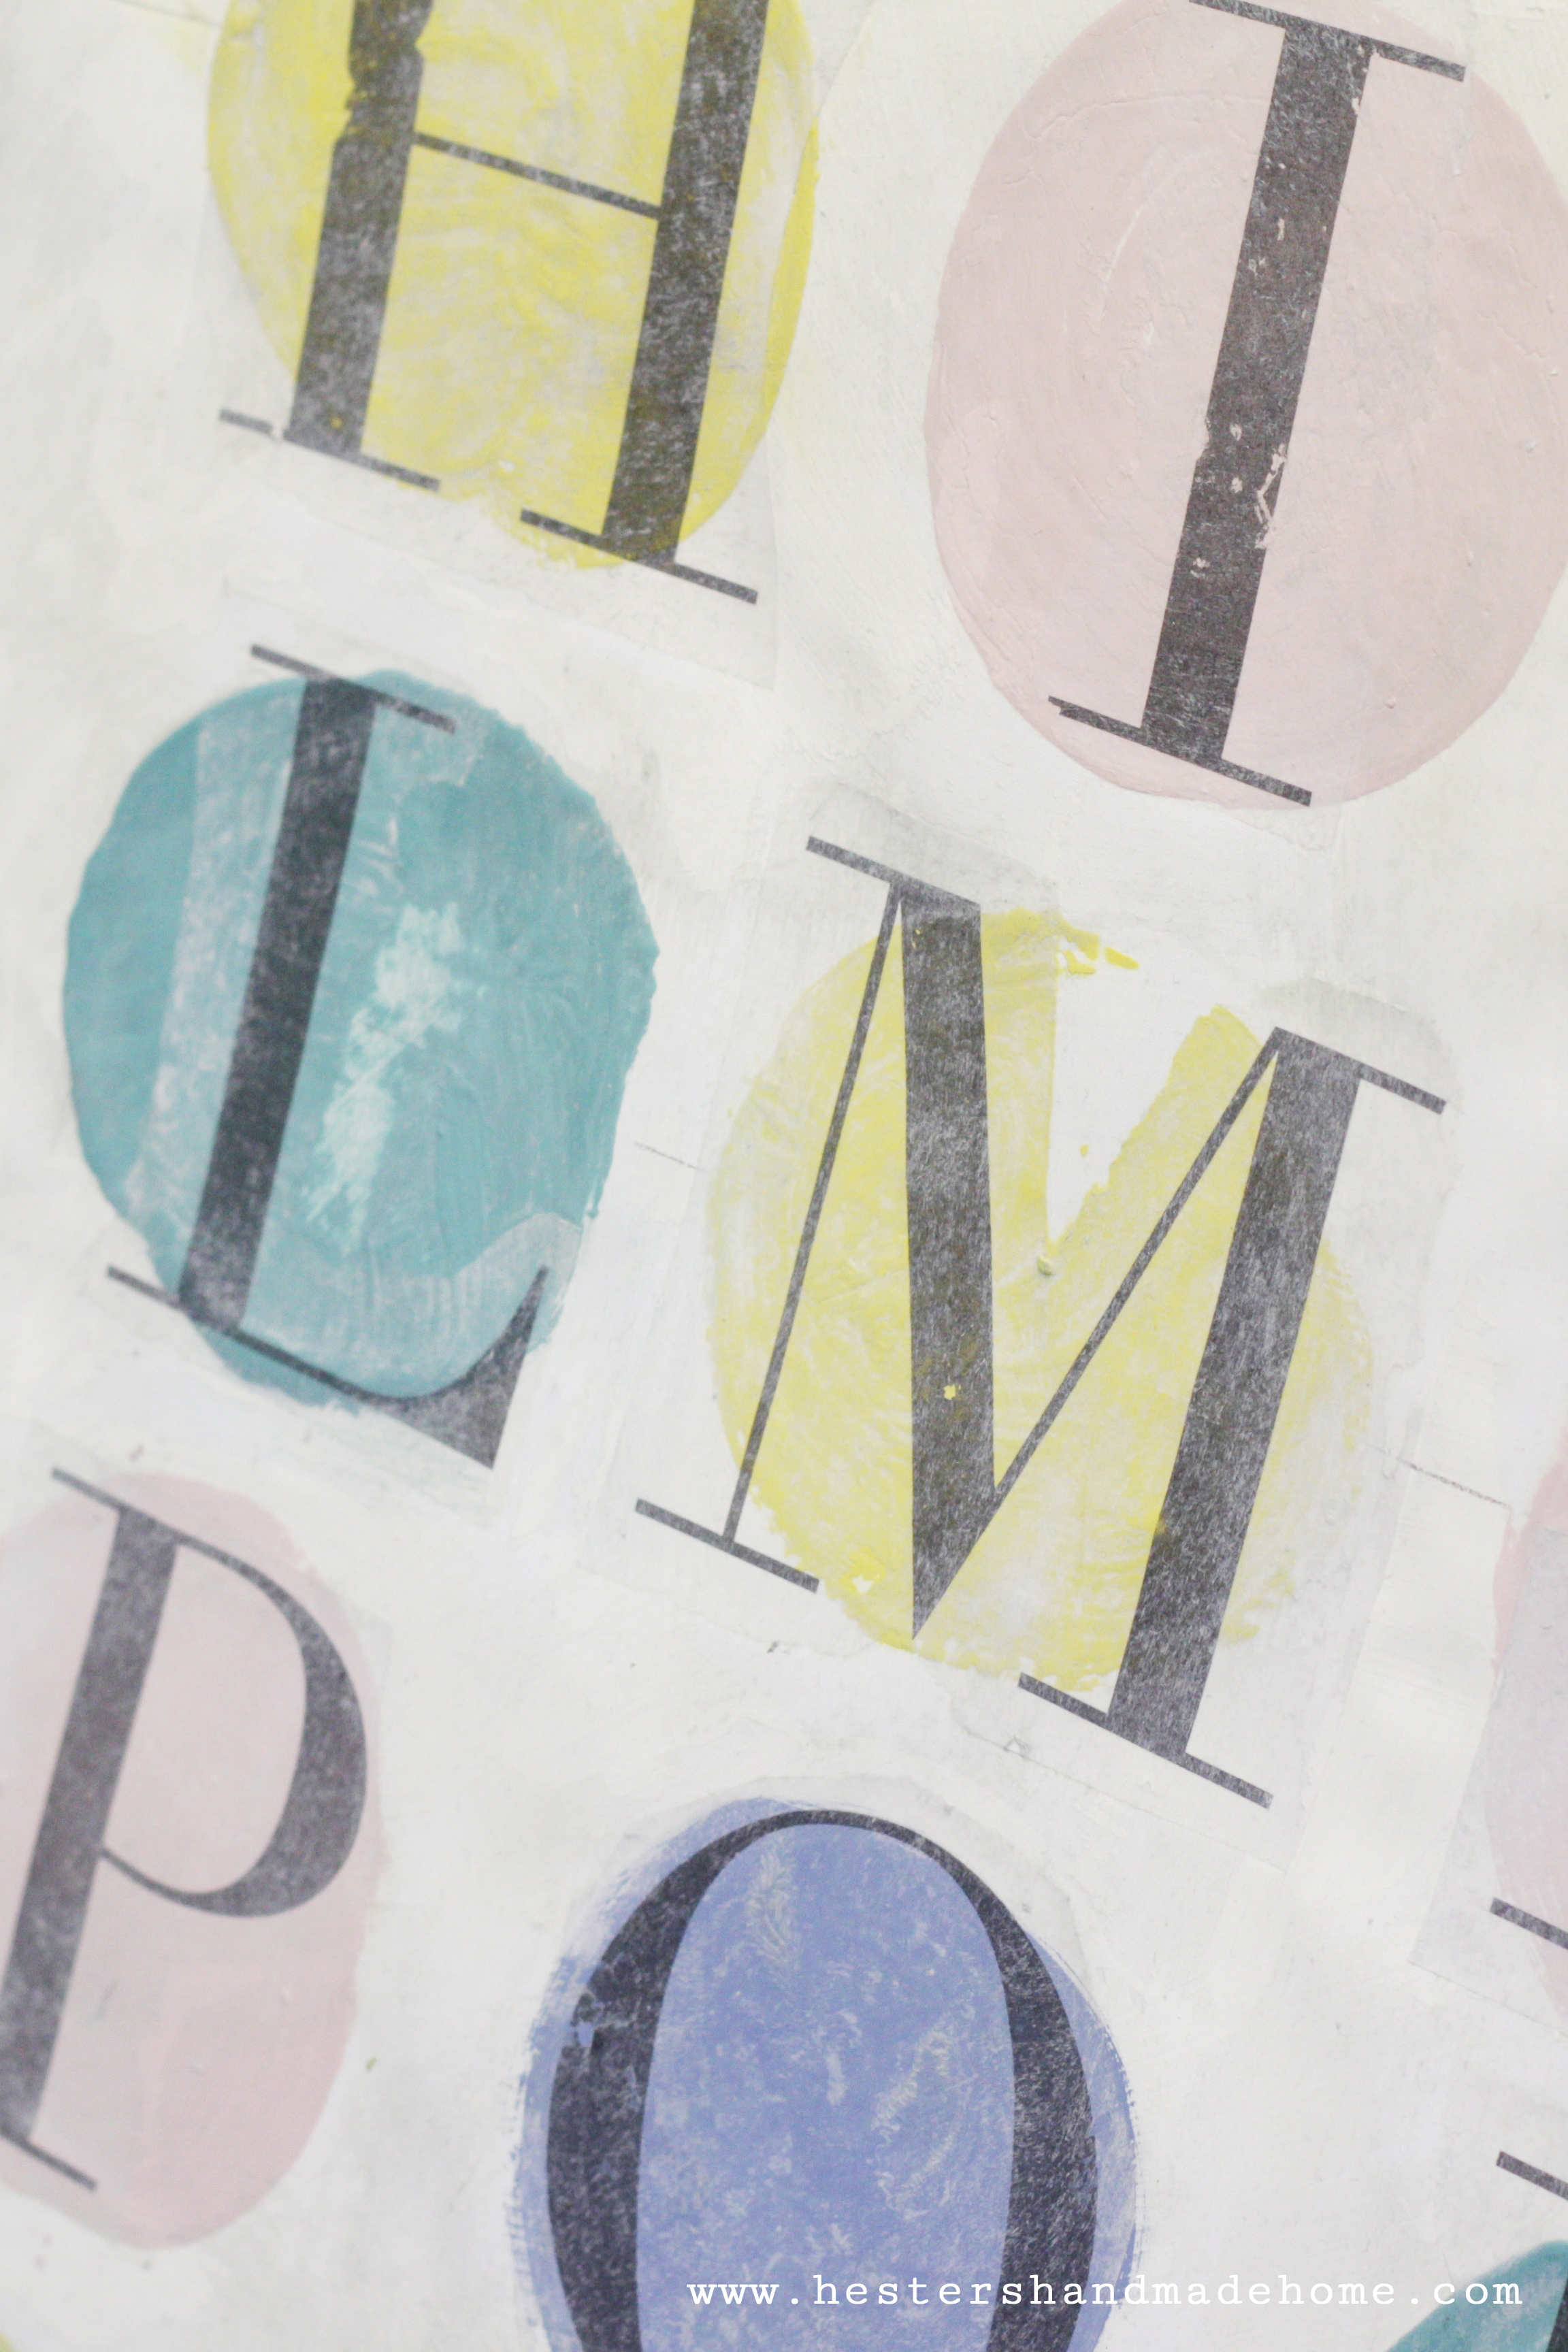 Detail of a piece in Annie Sloan's studio, photo by www.hestershandmadehome.com